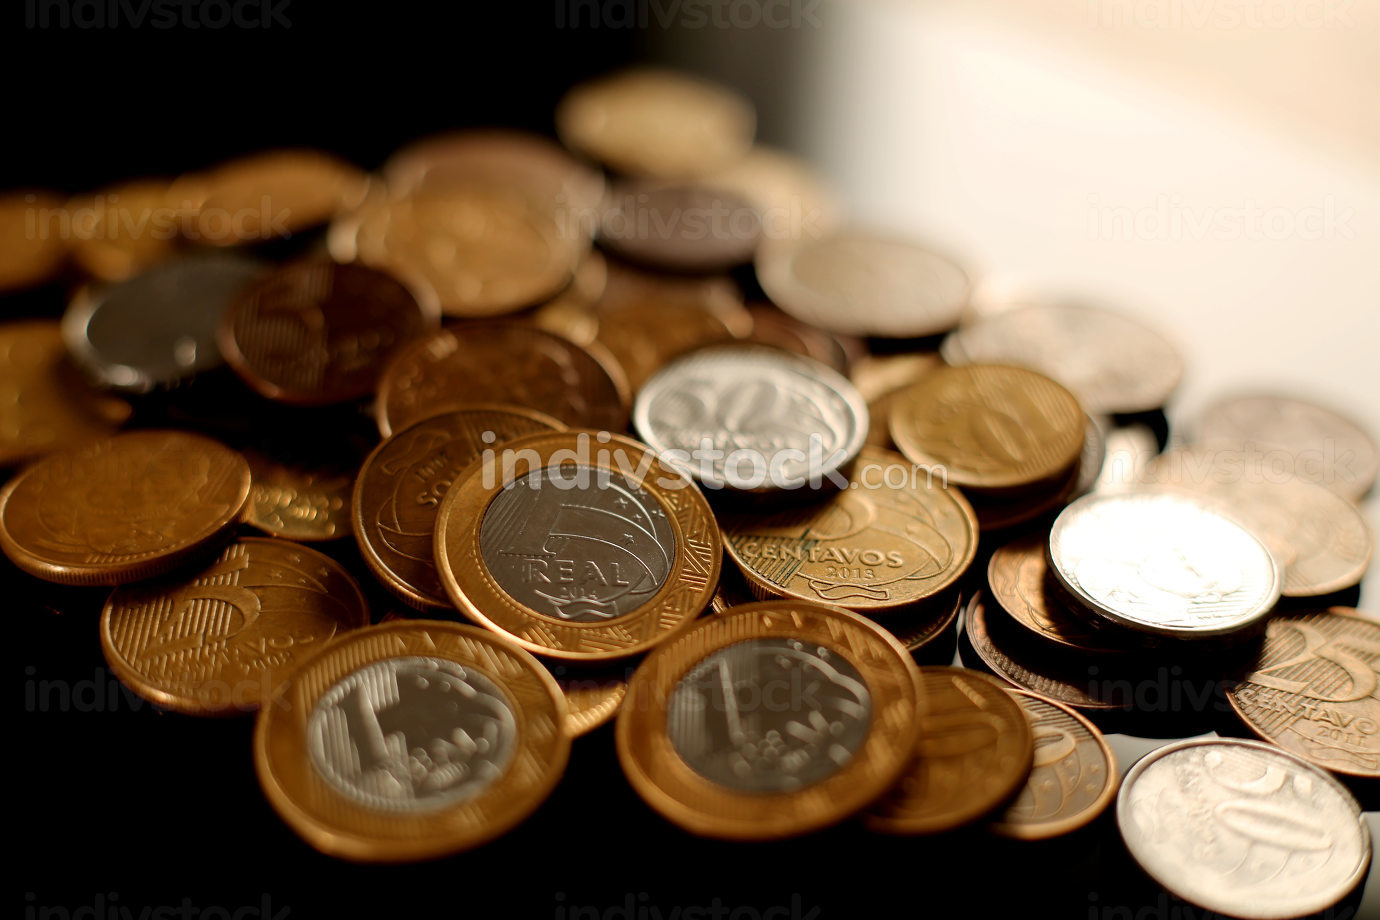 salvador, bahia Brazil, january 23, 2015, currency used in brazil, Heaped real coins forming collection in the city of Salvador